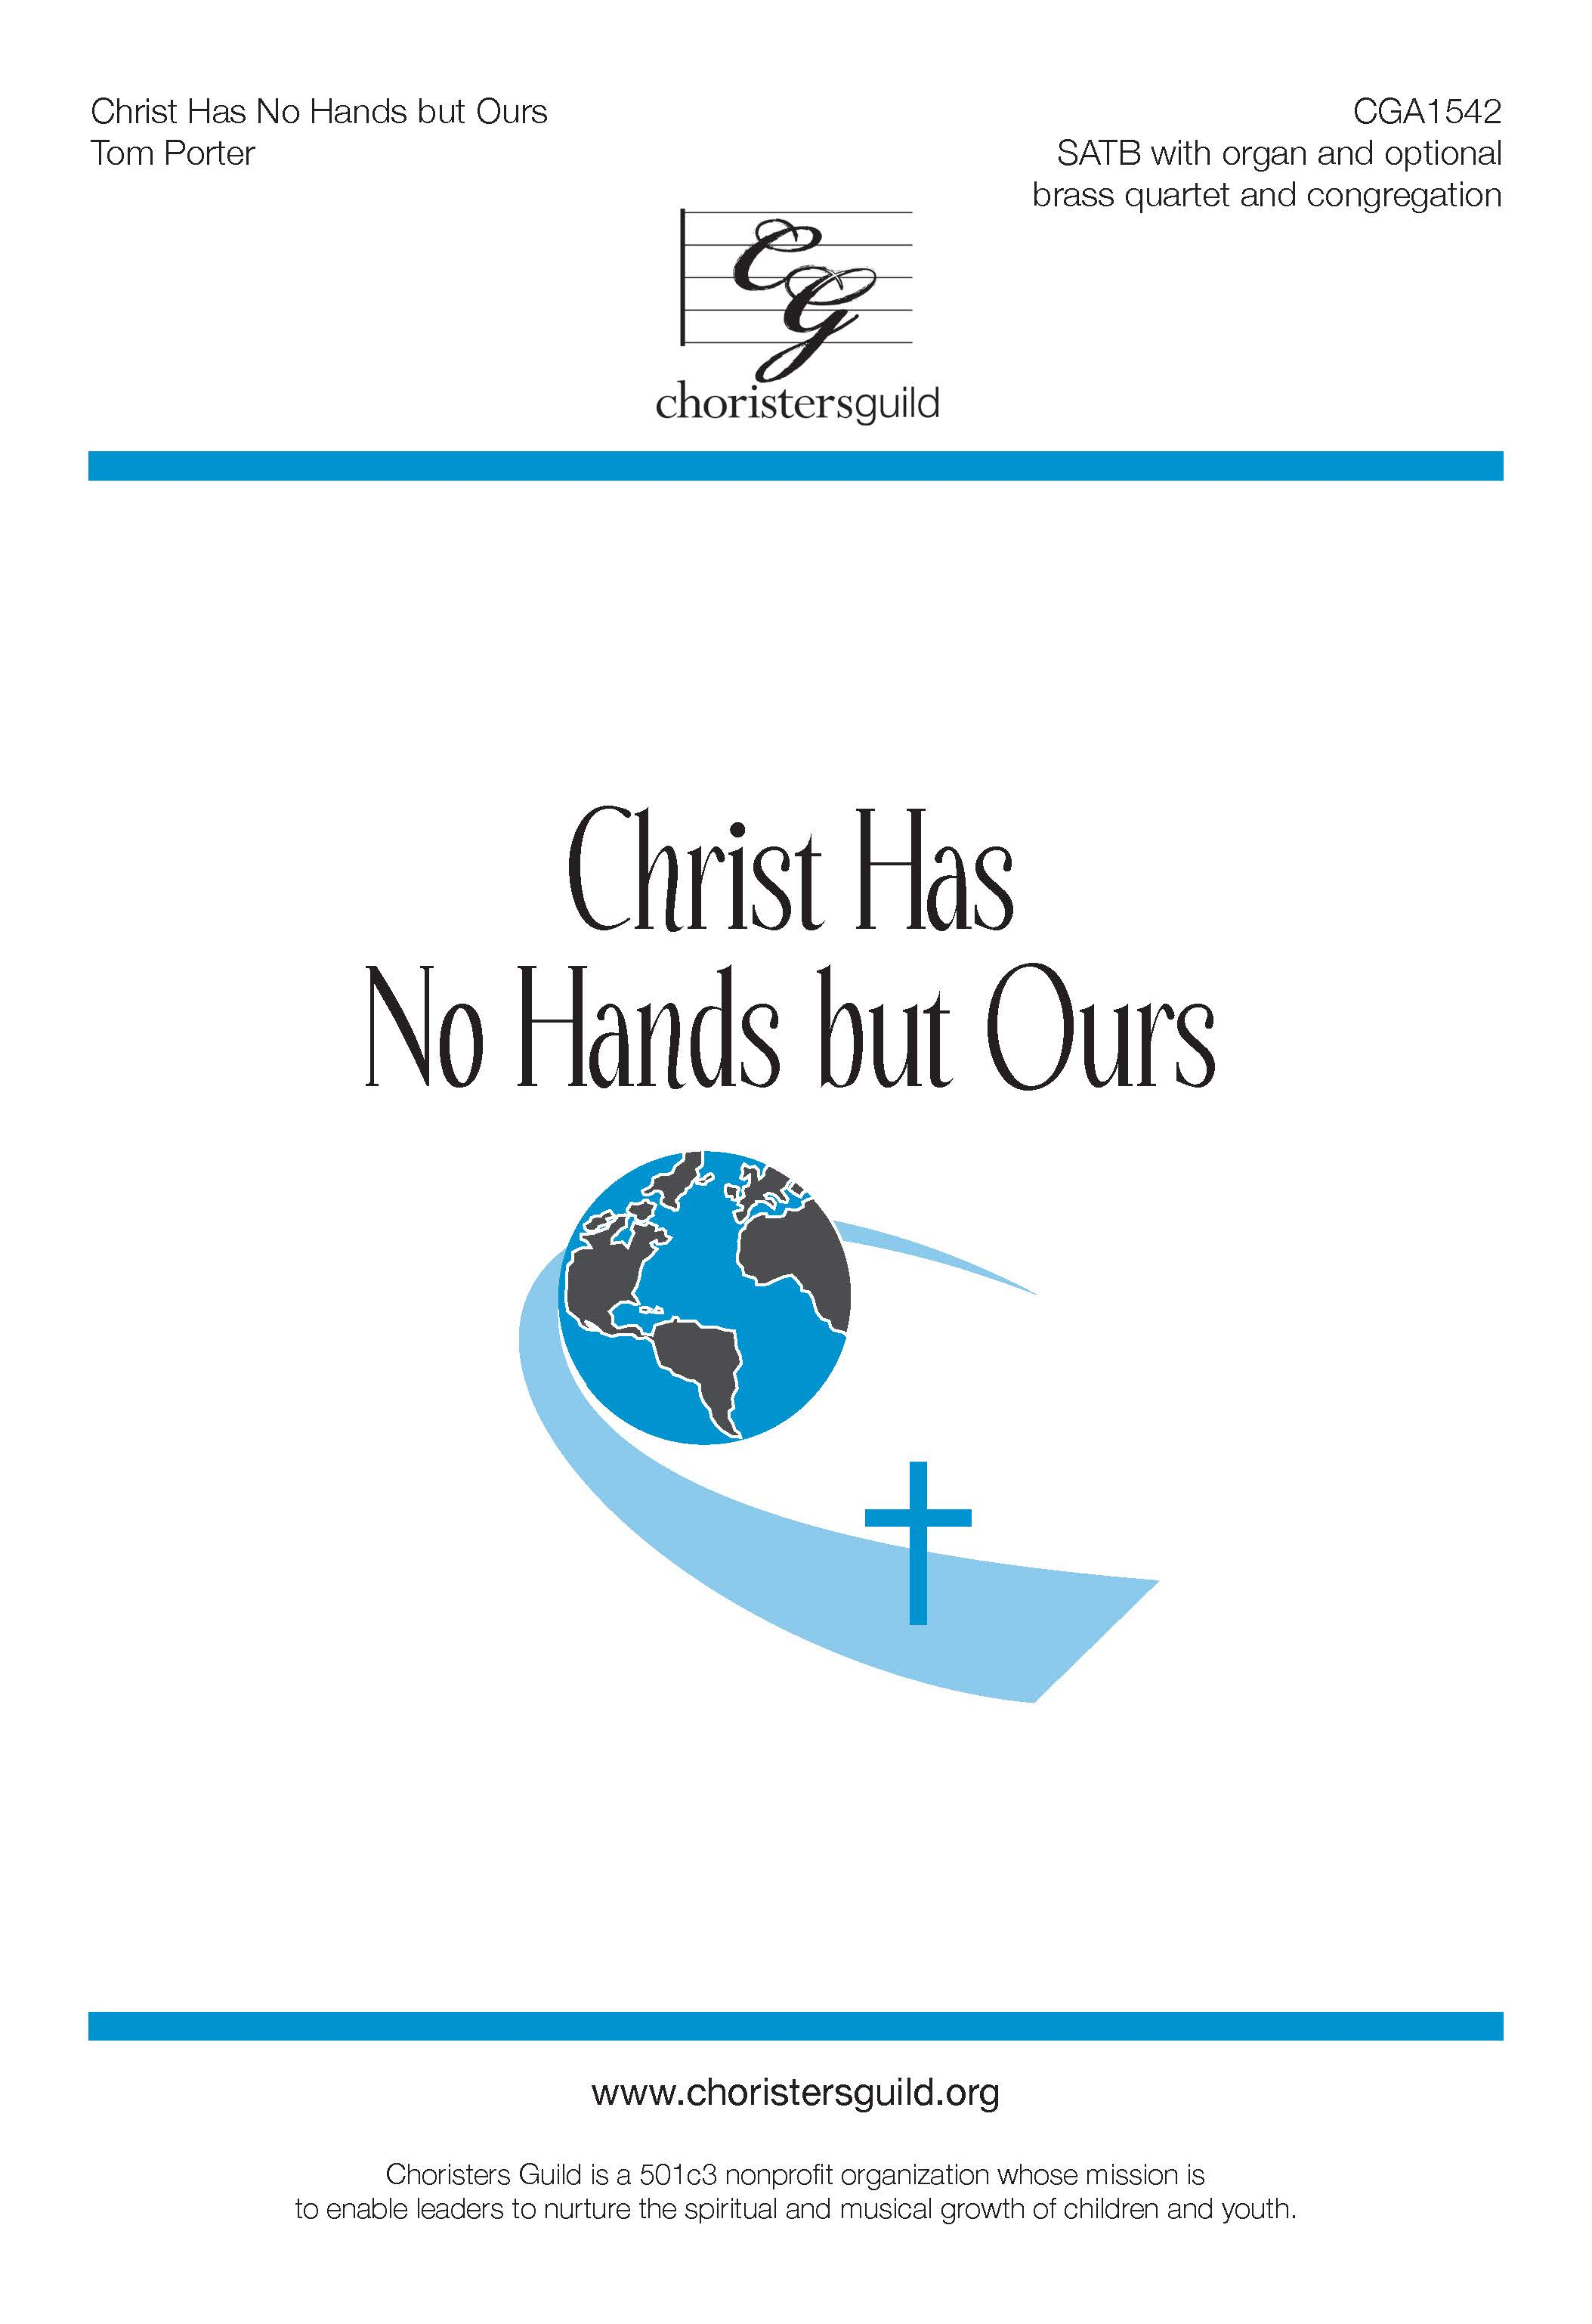 Christ Has No Hands but Ours